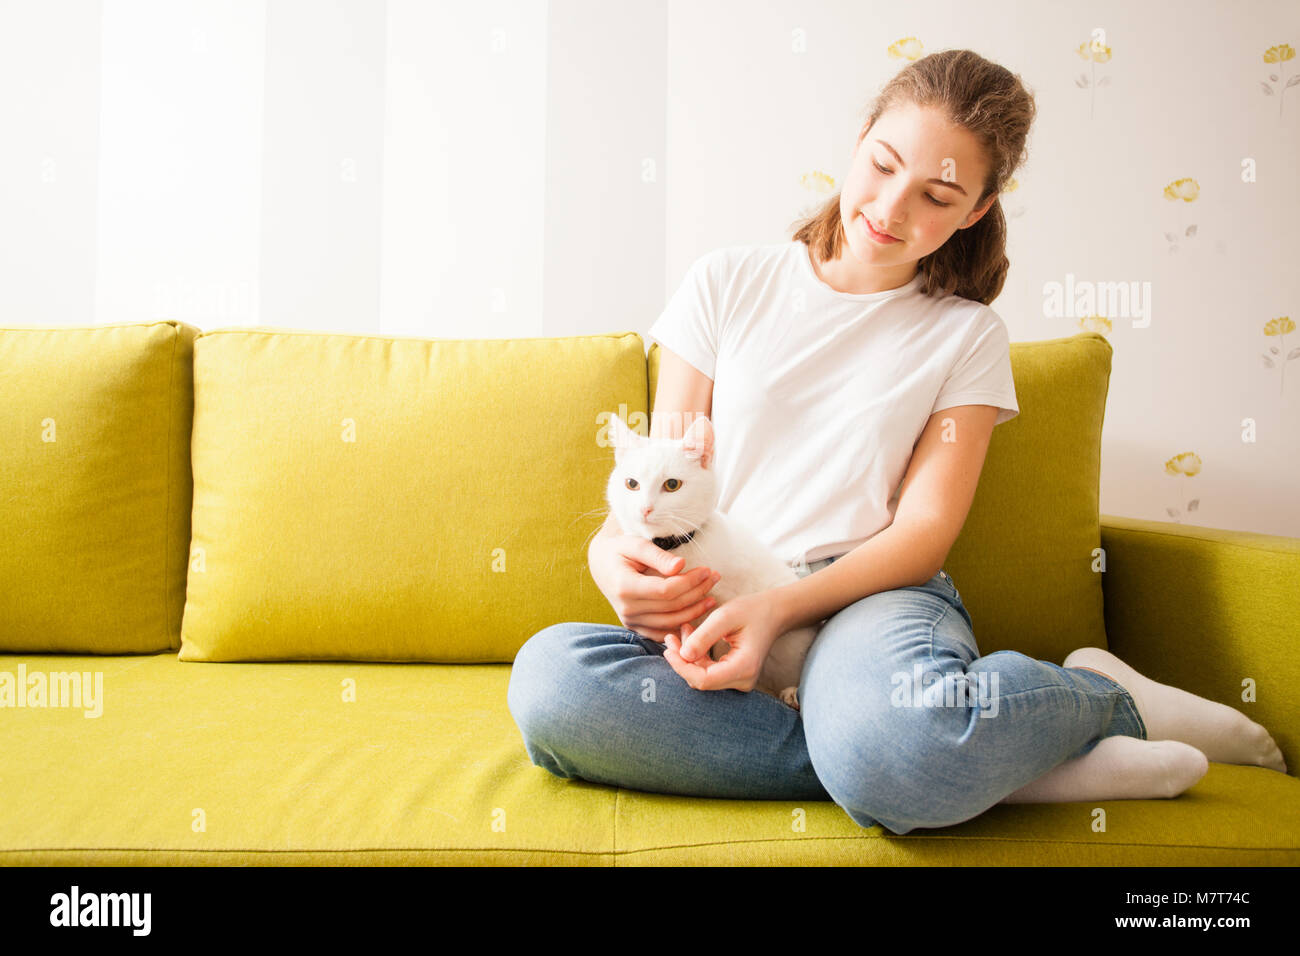 home atmosphere with the cat - Stock Image